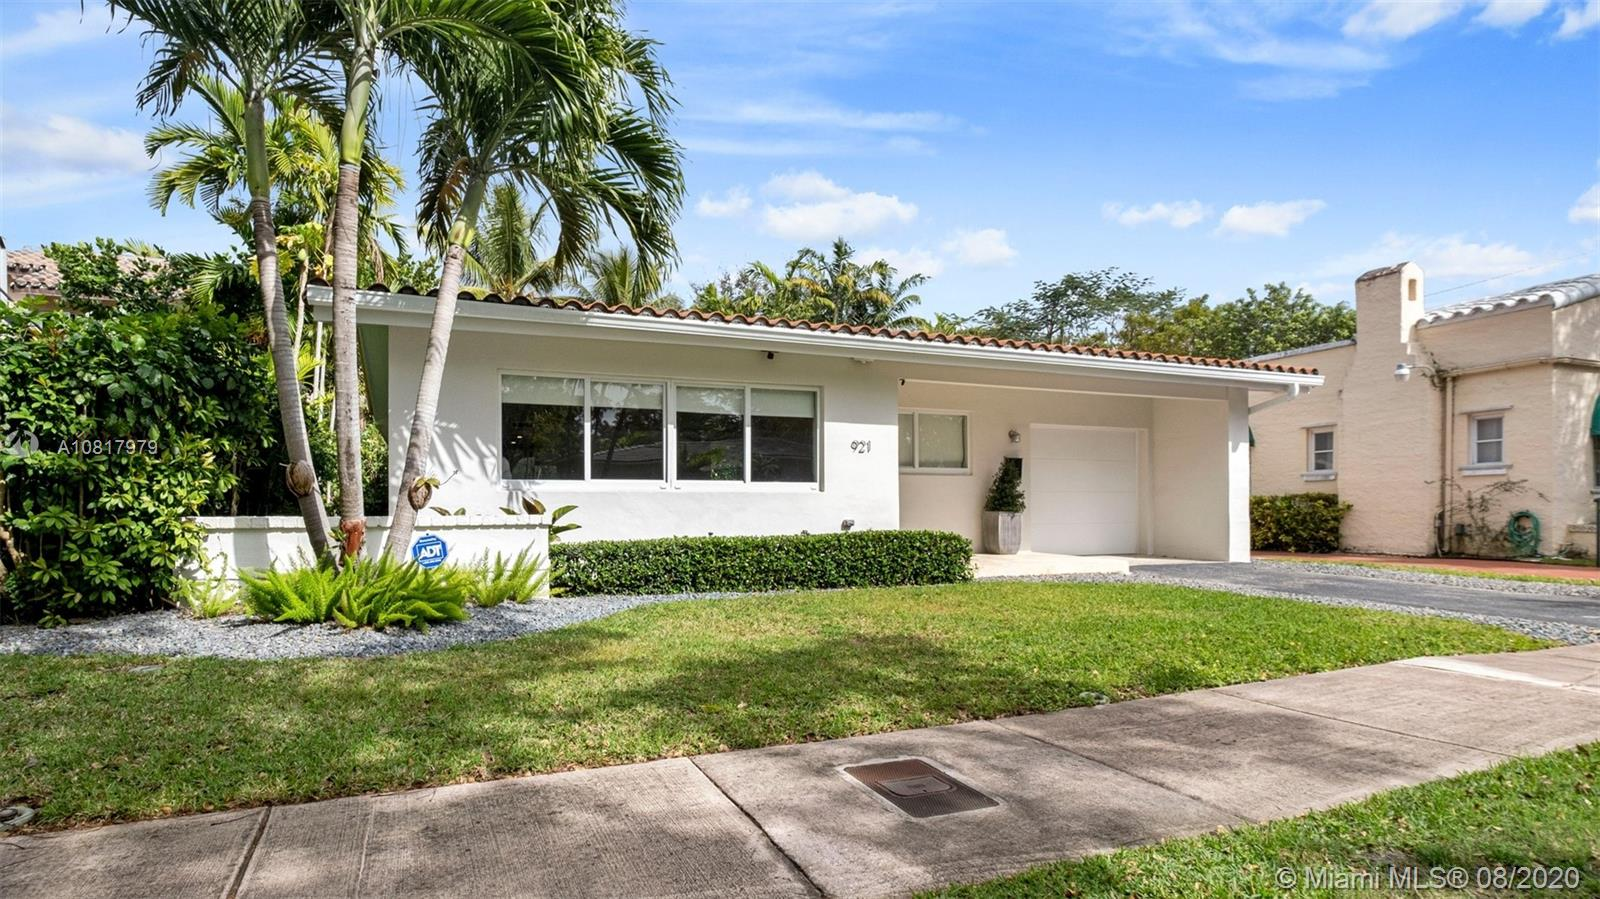 921  Ortega Ave  For Sale A10817979, FL